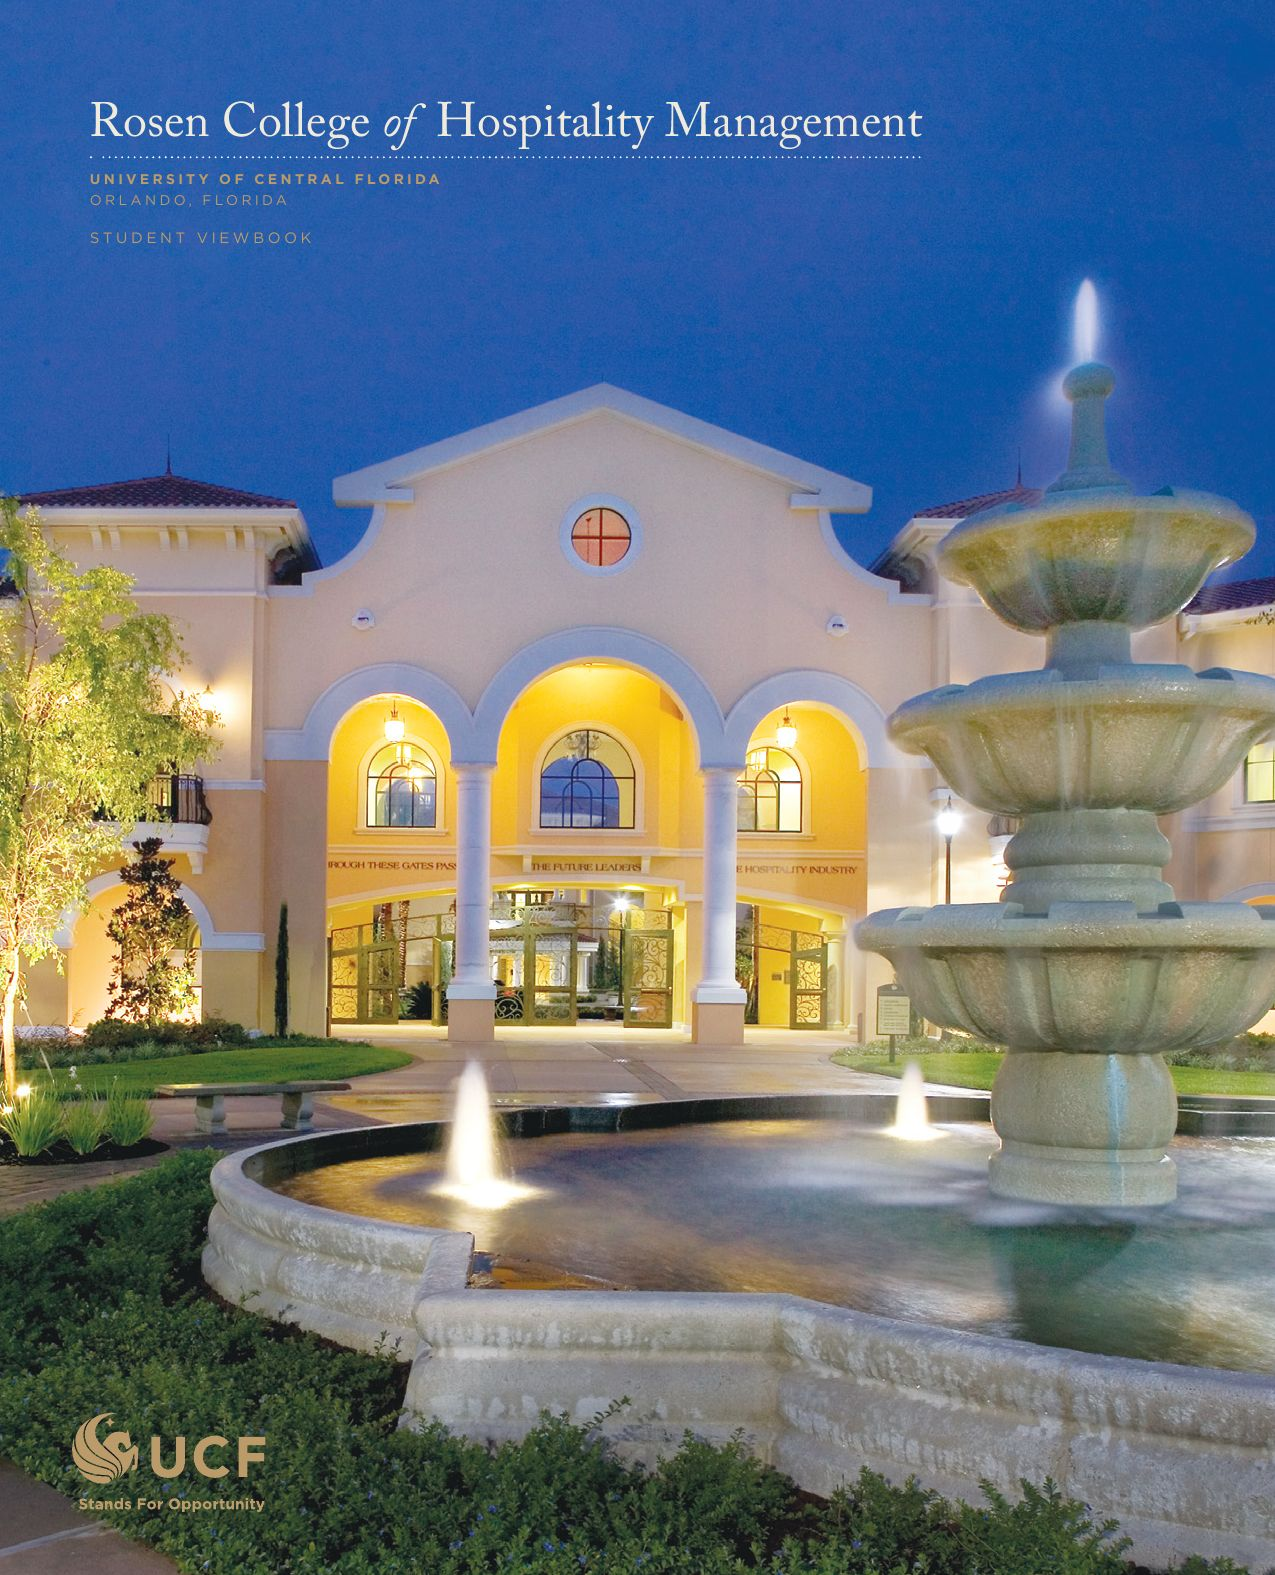 Rosen College Of Hospitality Management Viewbook By University Of Central  Florida  Issuu